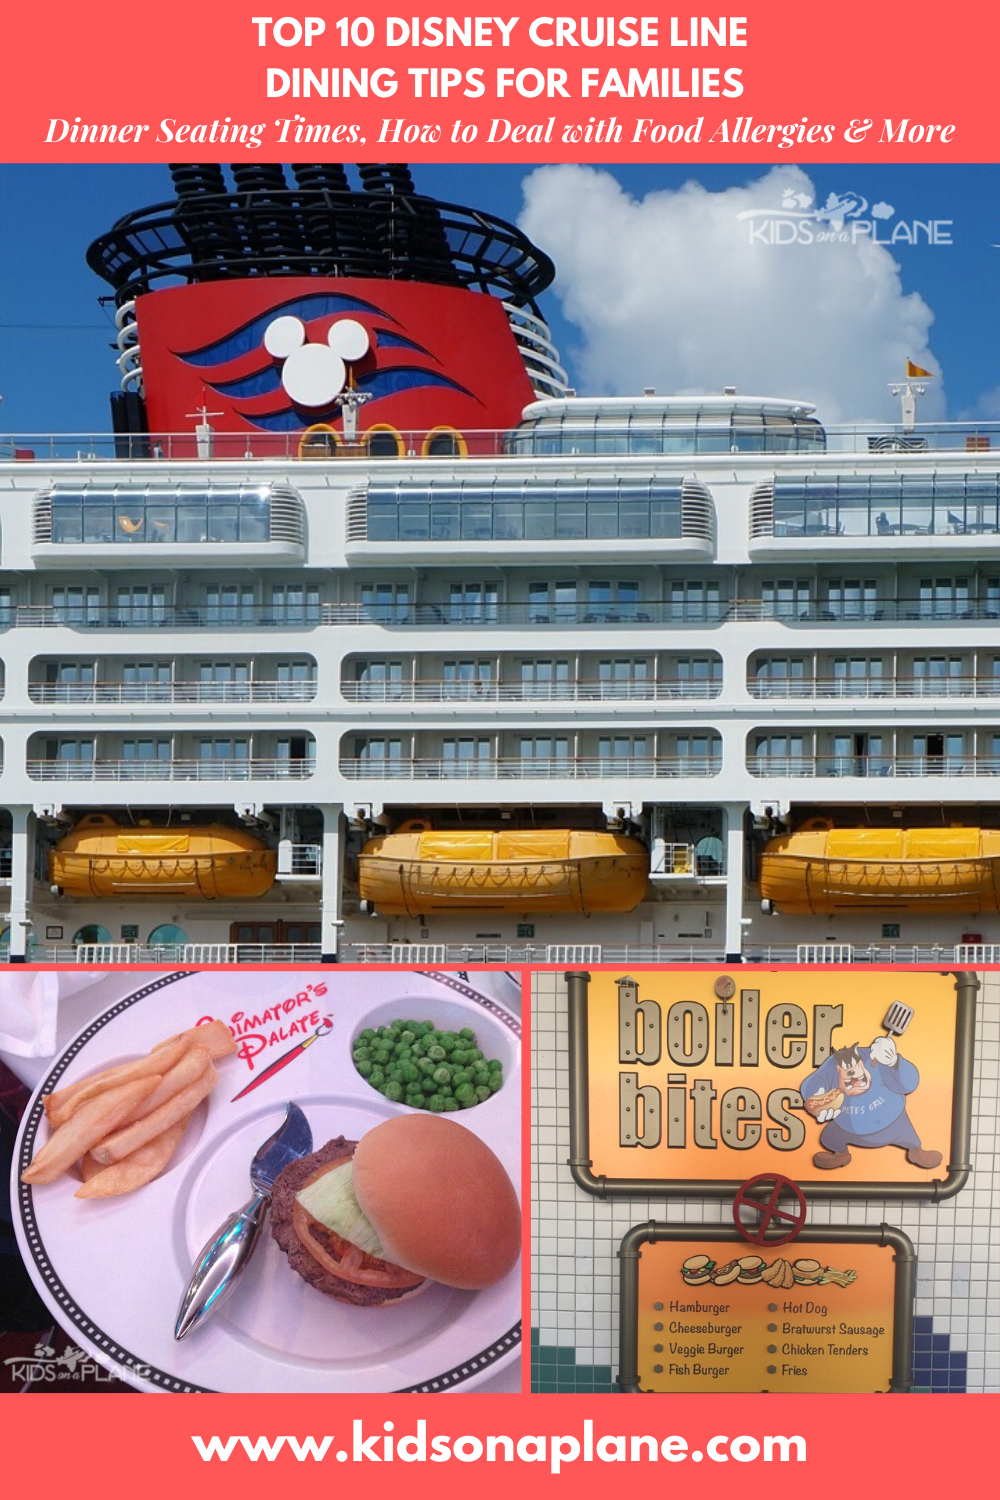 Disney Cruise Line Dining Tips - How to Handle Food Allergies and Choose a Dinner Seating Time and More